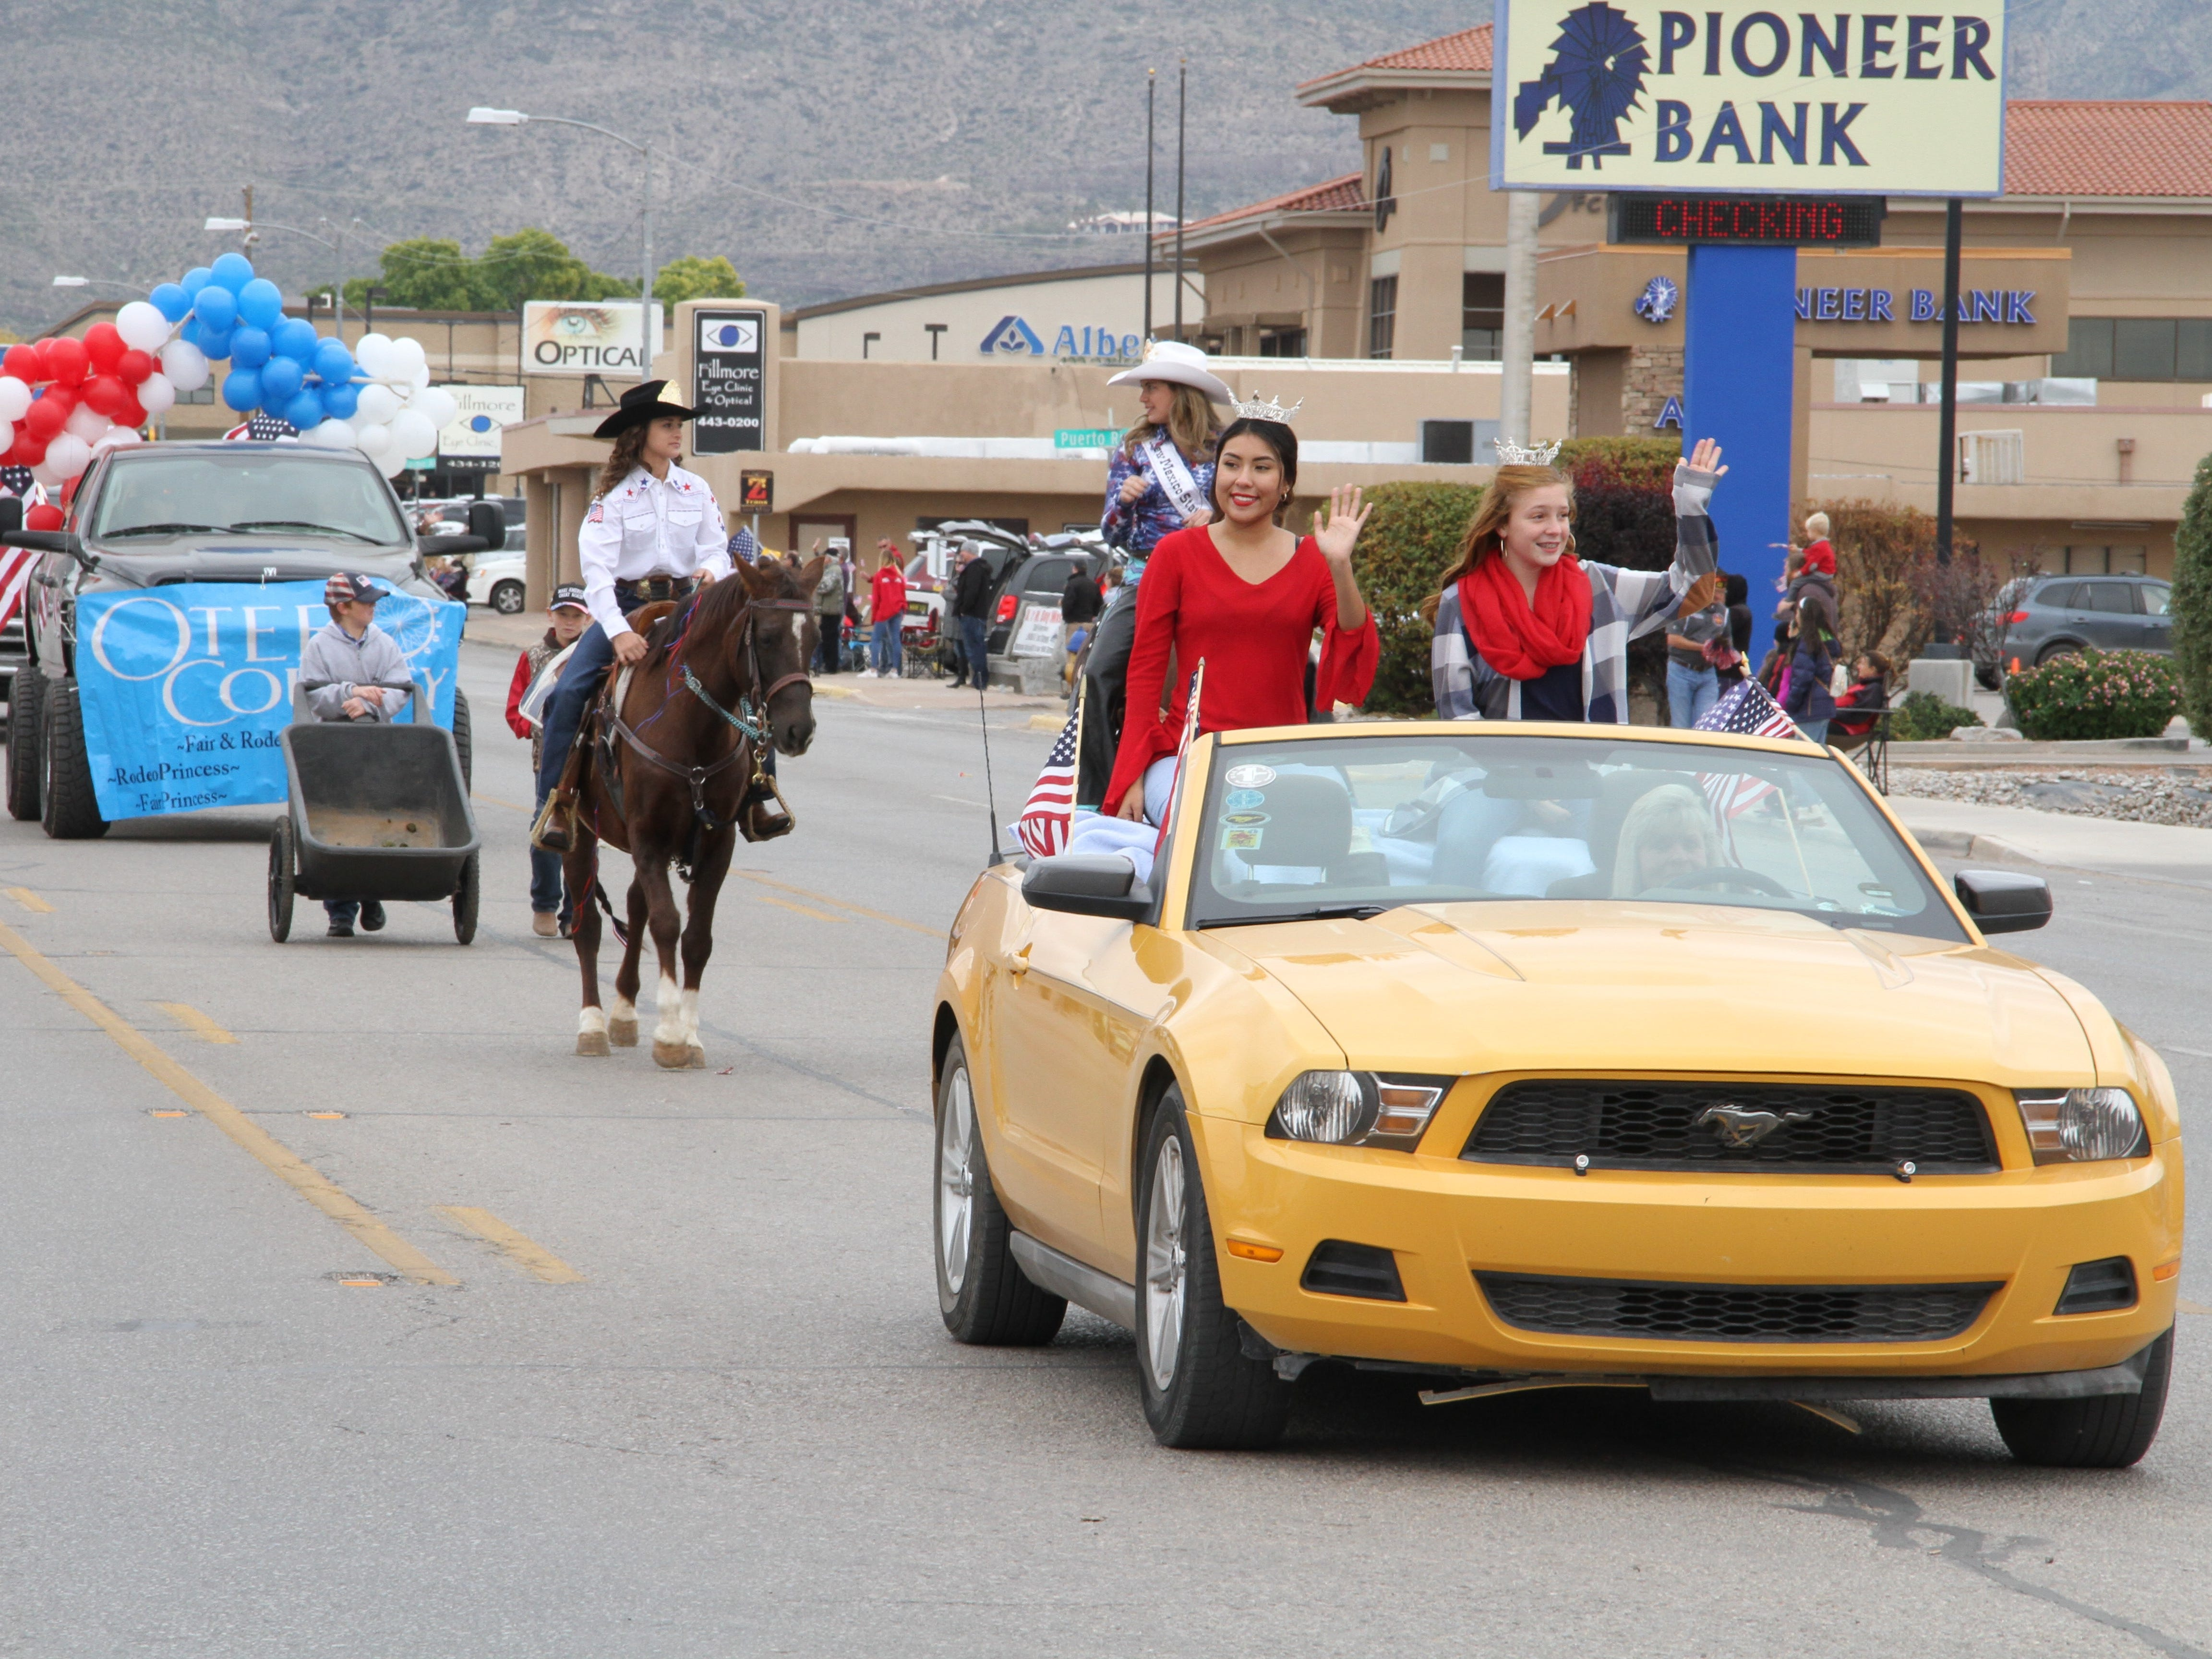 Alamogordo's Veterans Day Parade had 32 entries to salute the military men and women who served and continue to serve in the U.S. Armed Forces.